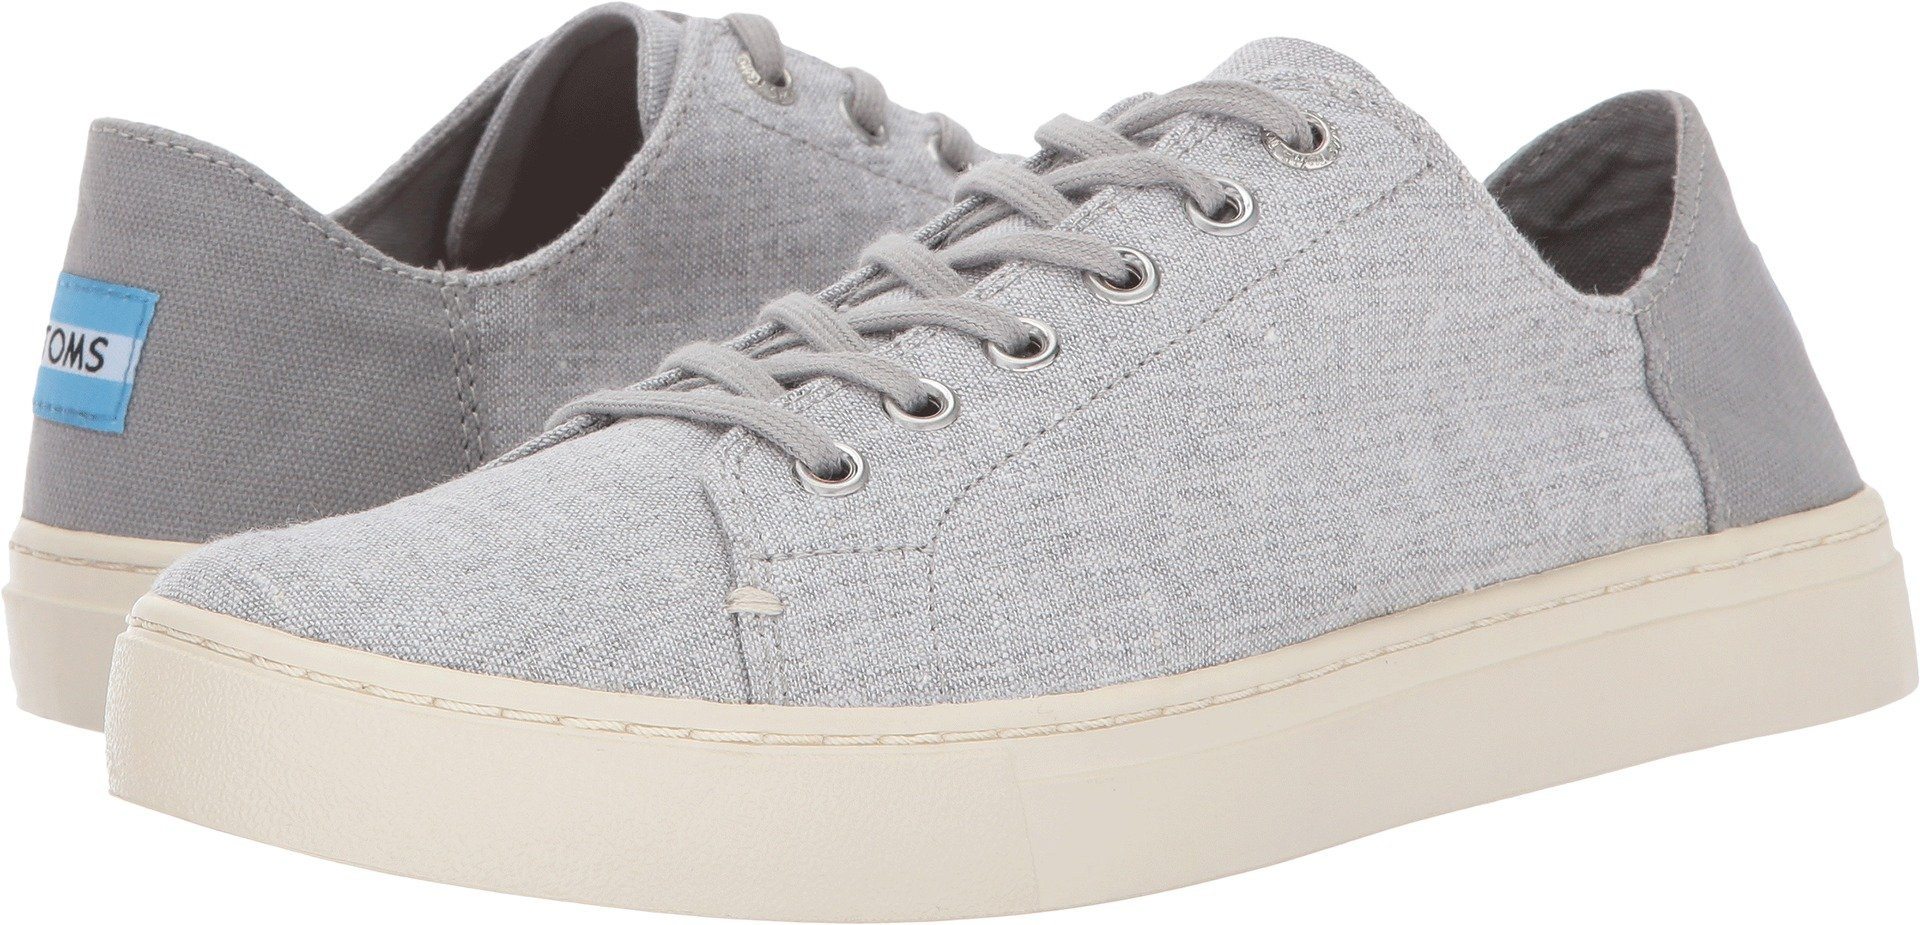 TOMS Women's Lenox Sneaker Drizzle Grey Slub Chambray Oxford